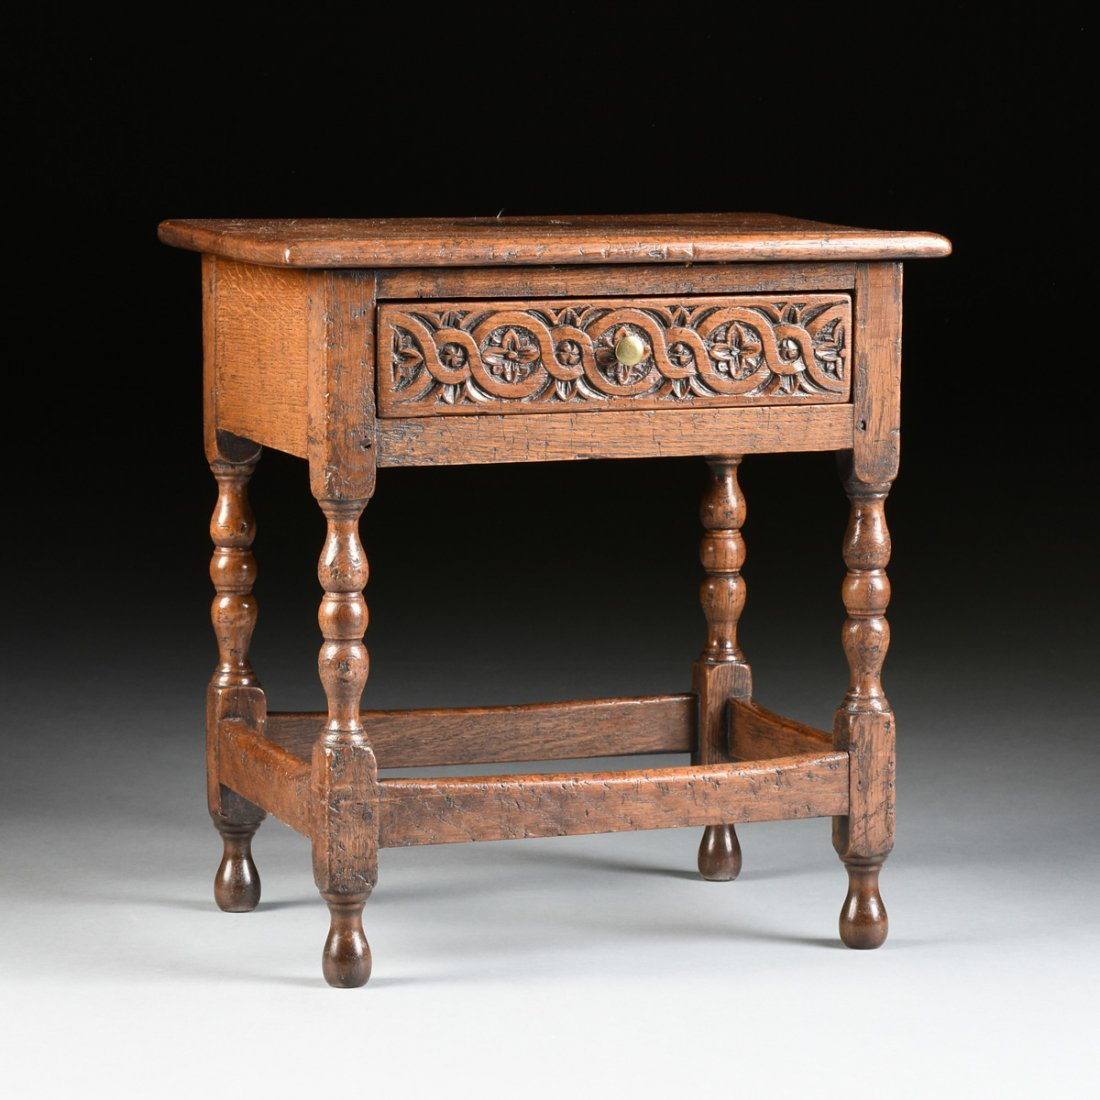 A WILLIAM AND MARY STYLE CARVED OAK SIDE TABLE,